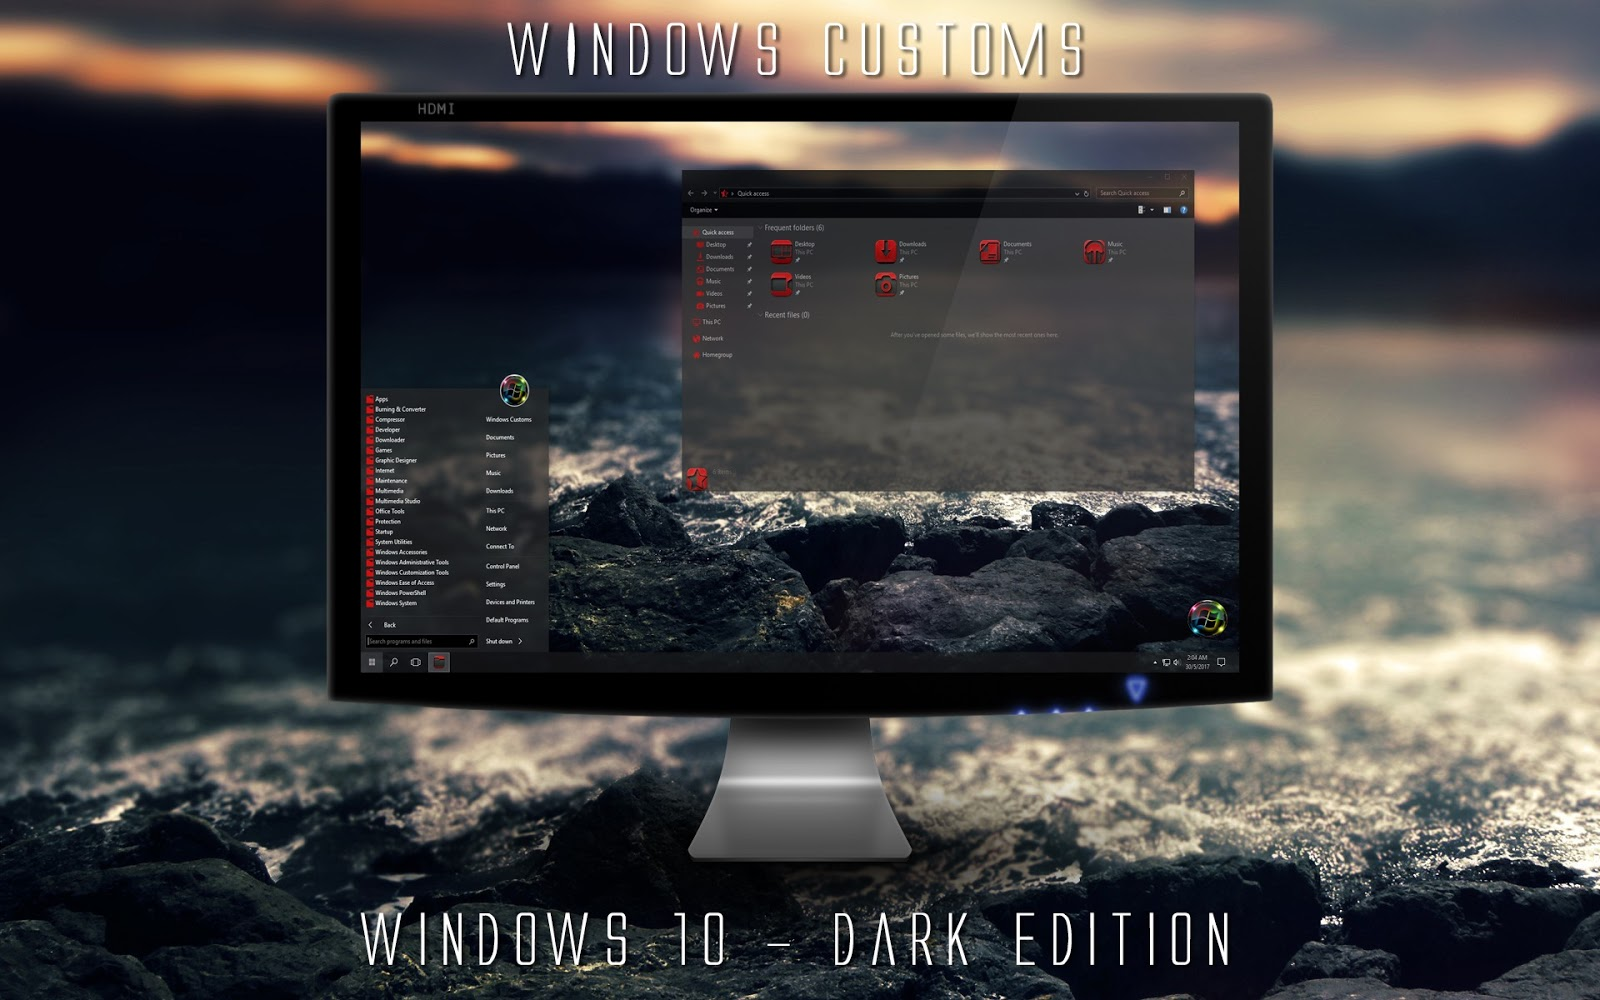 Windows Customs: Windows 10 - Dark Edition